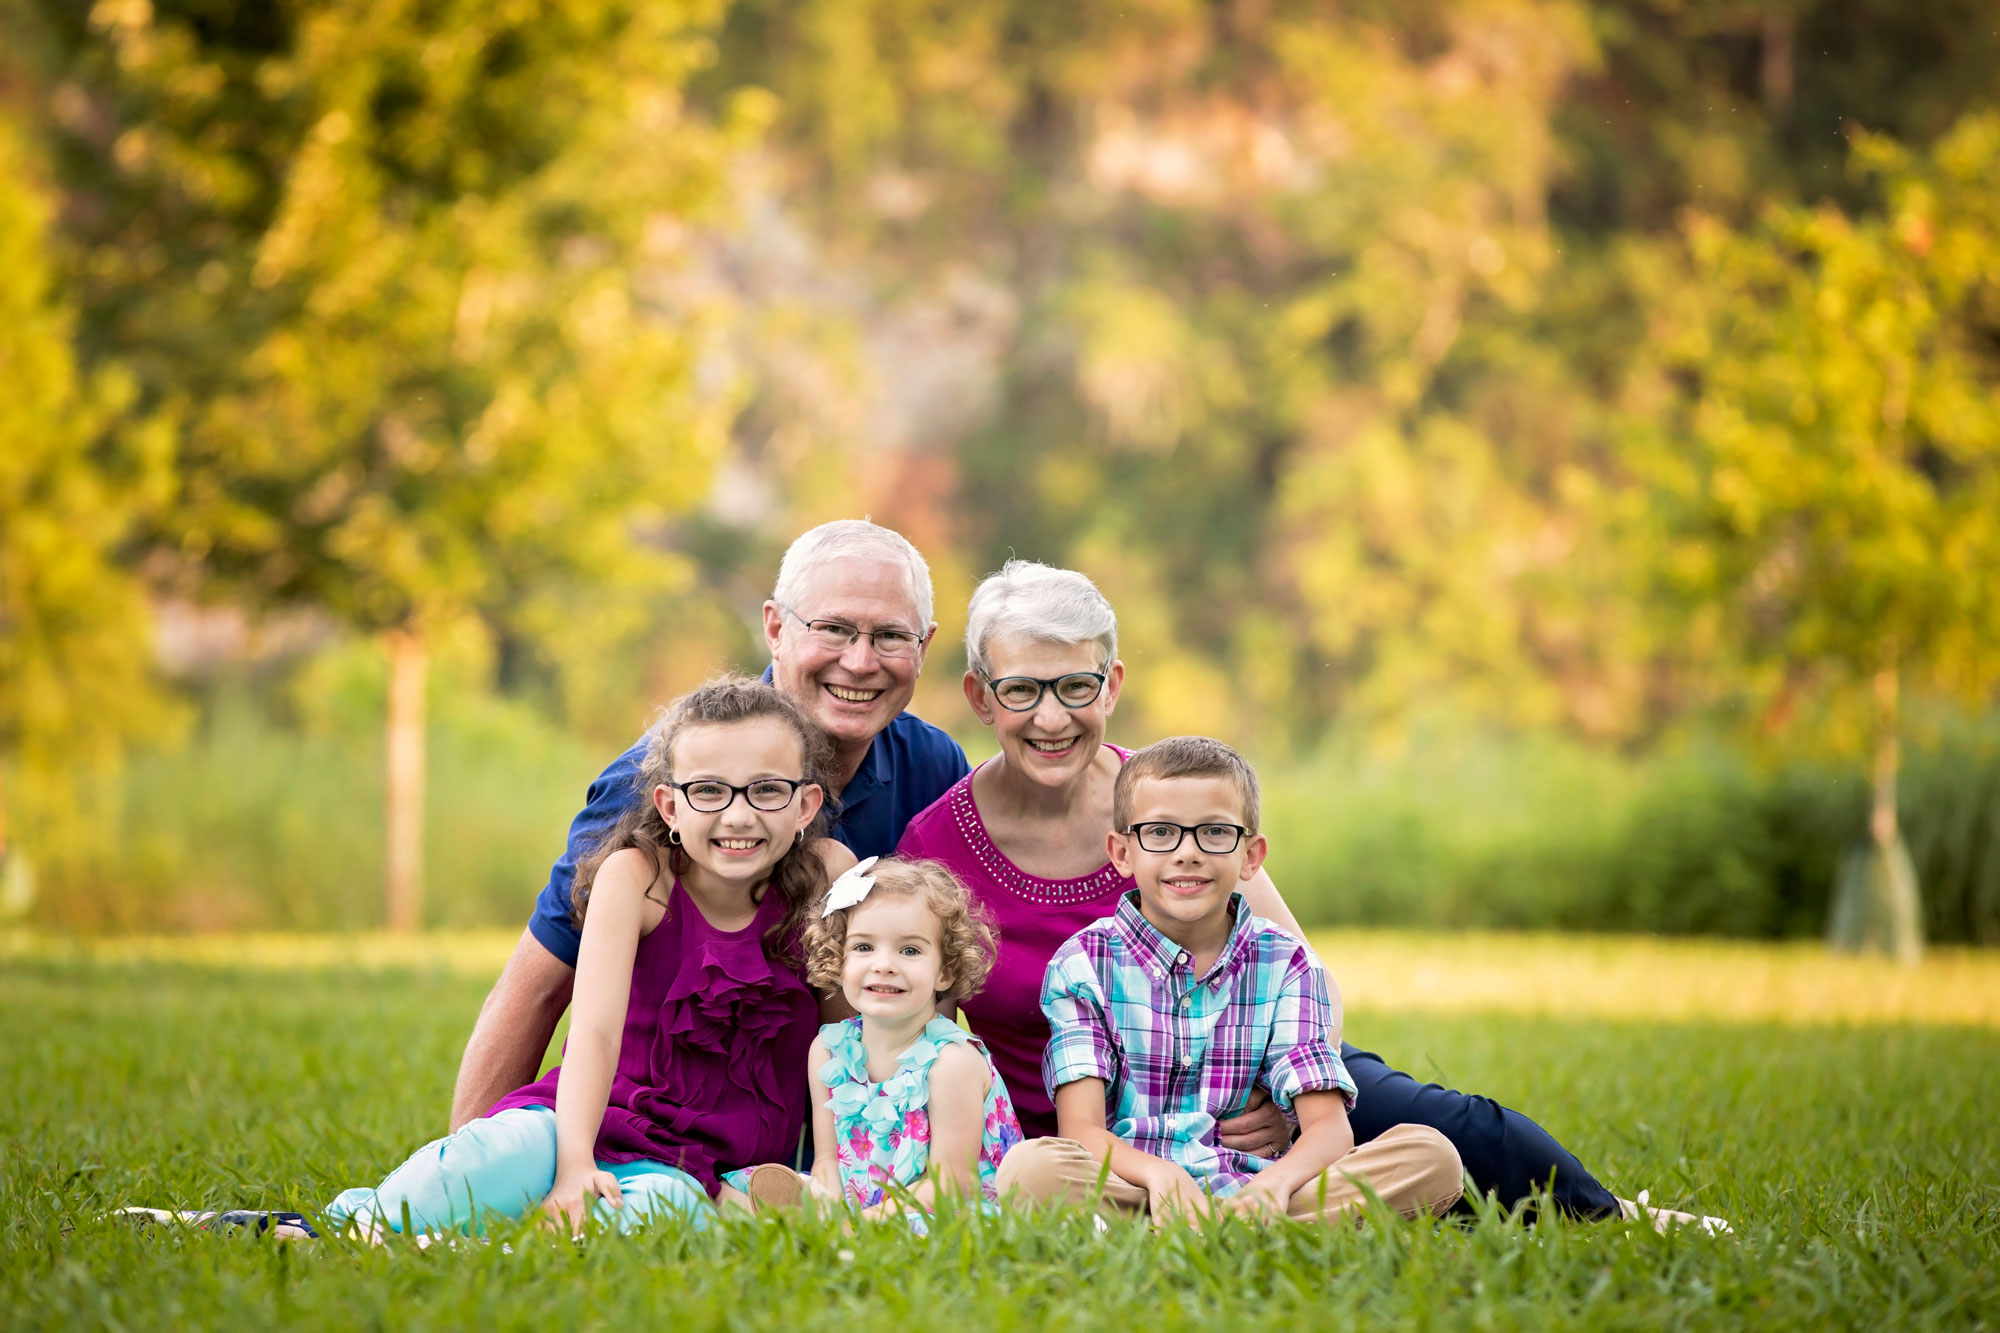 knoxville-family-reunion-photographer-grandparents-with-grandchildren.jpg